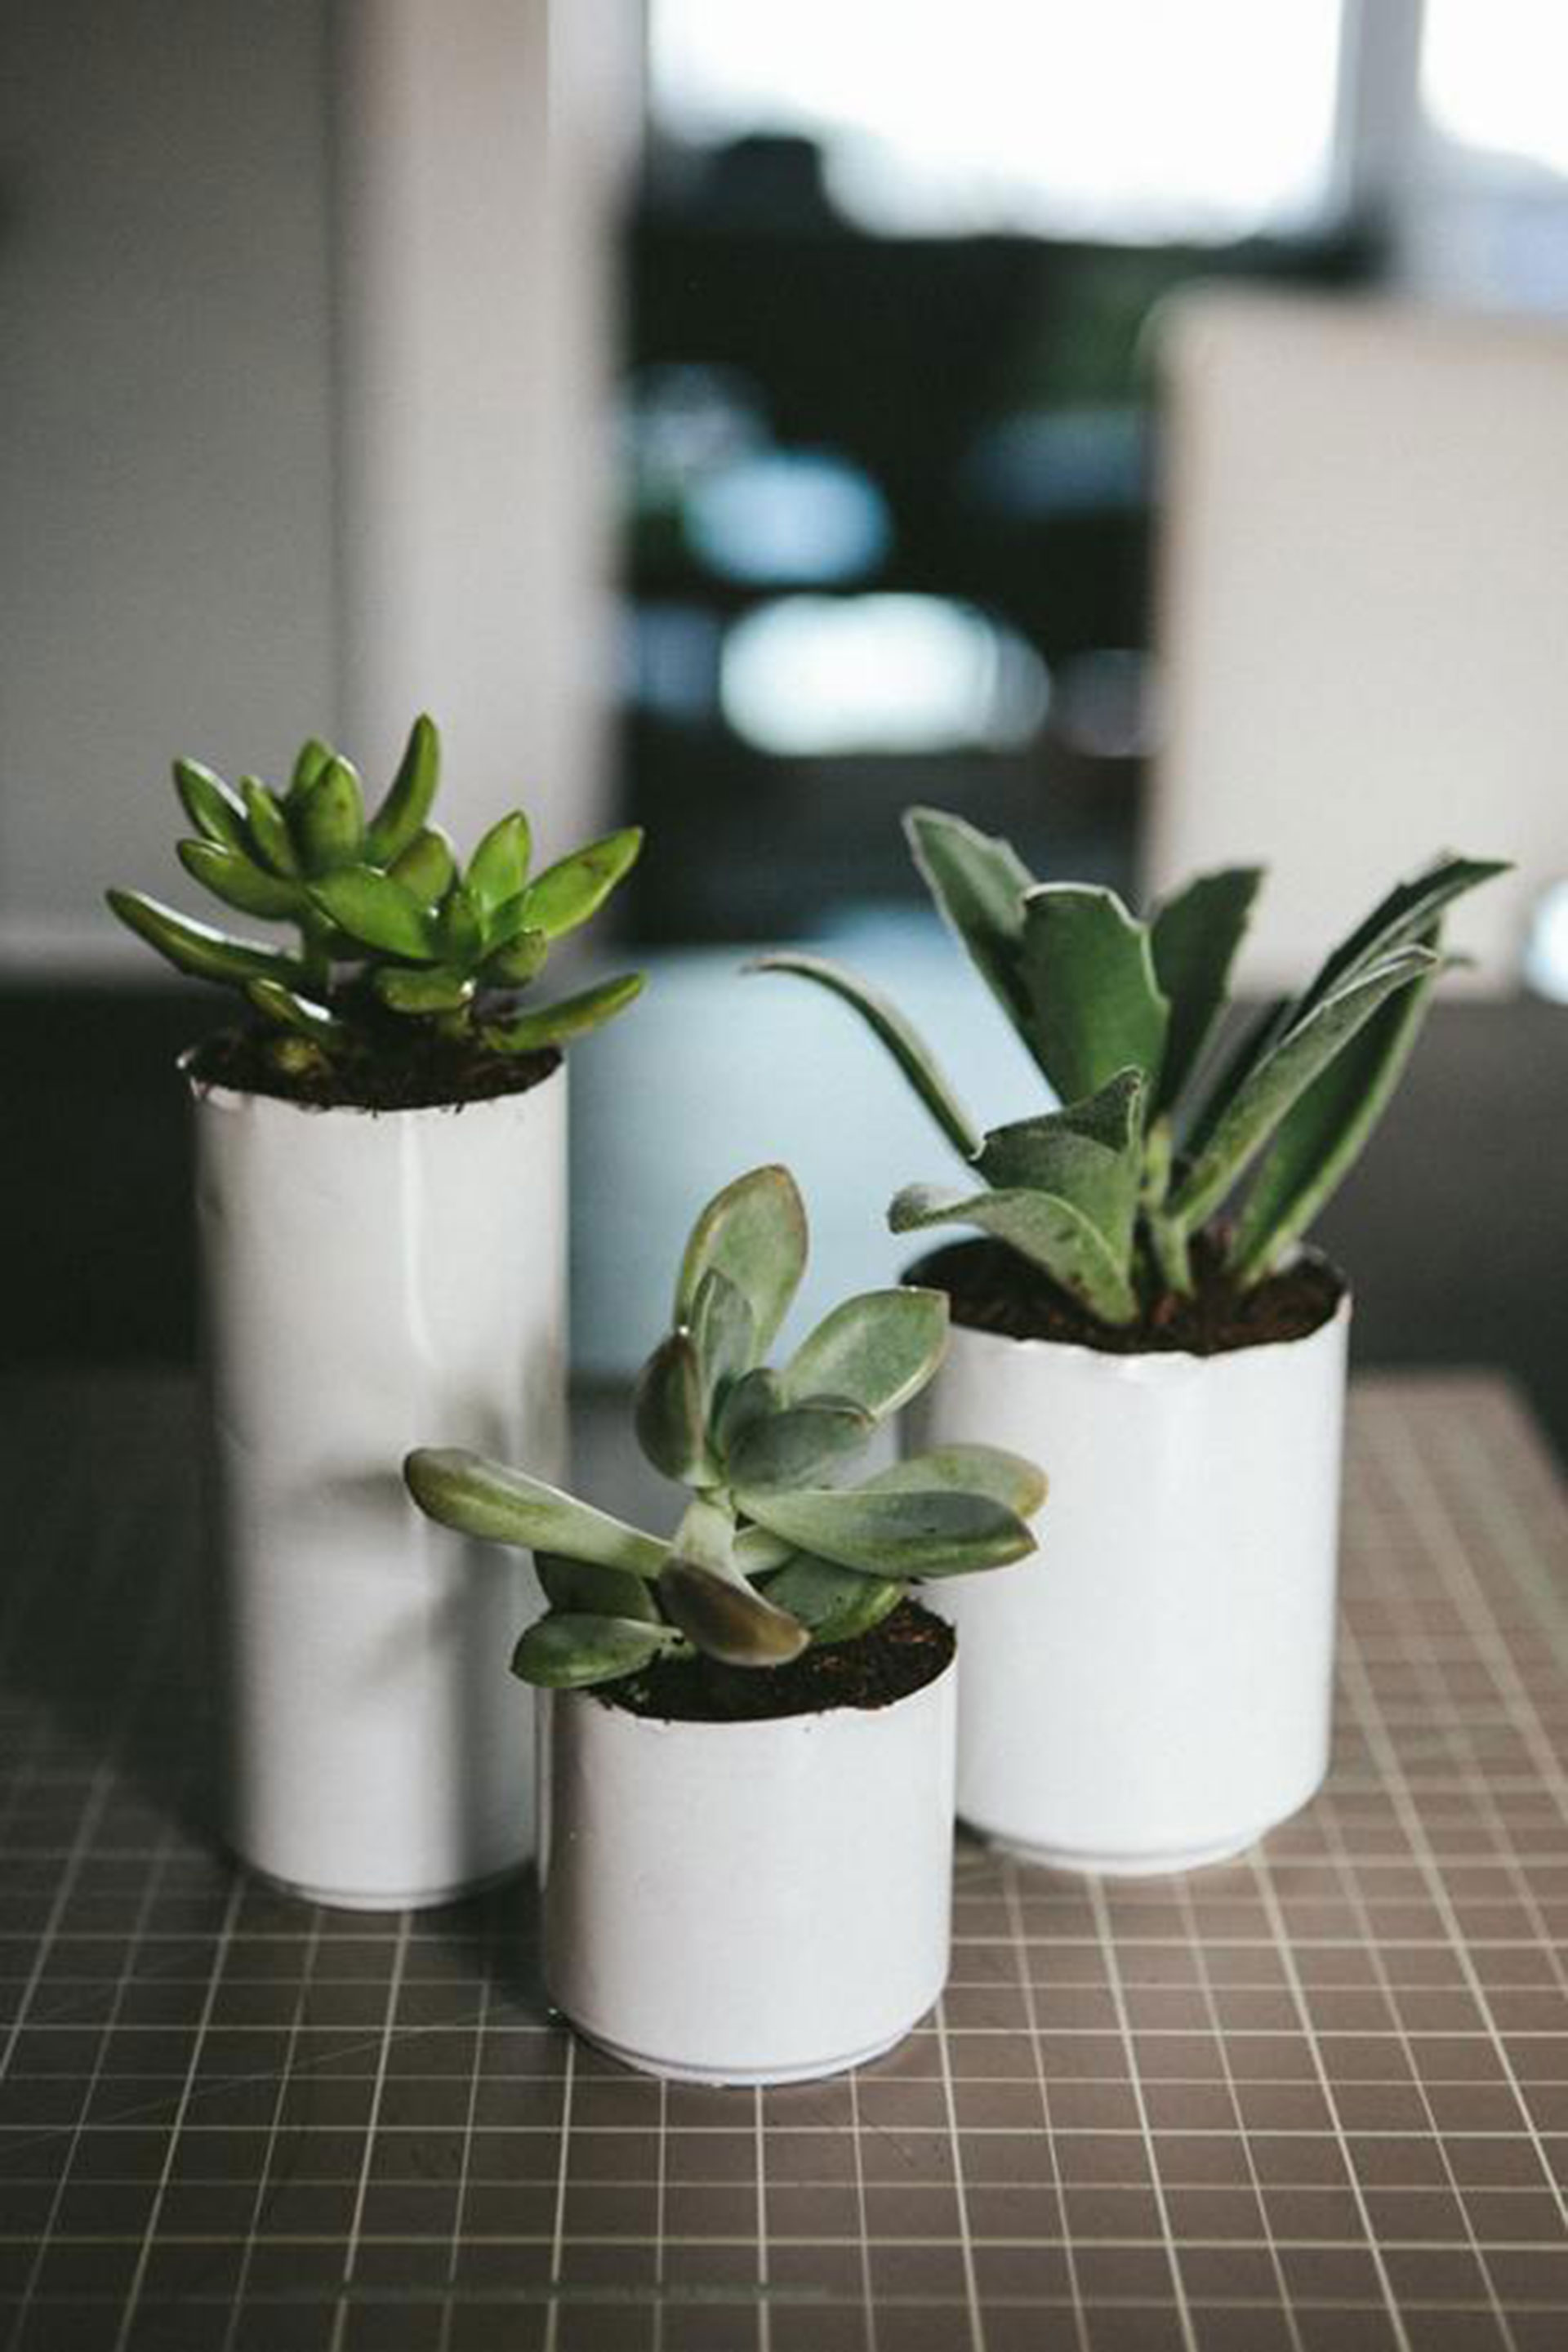 Set aside those dull pots and opt to use creative planters that you will love.